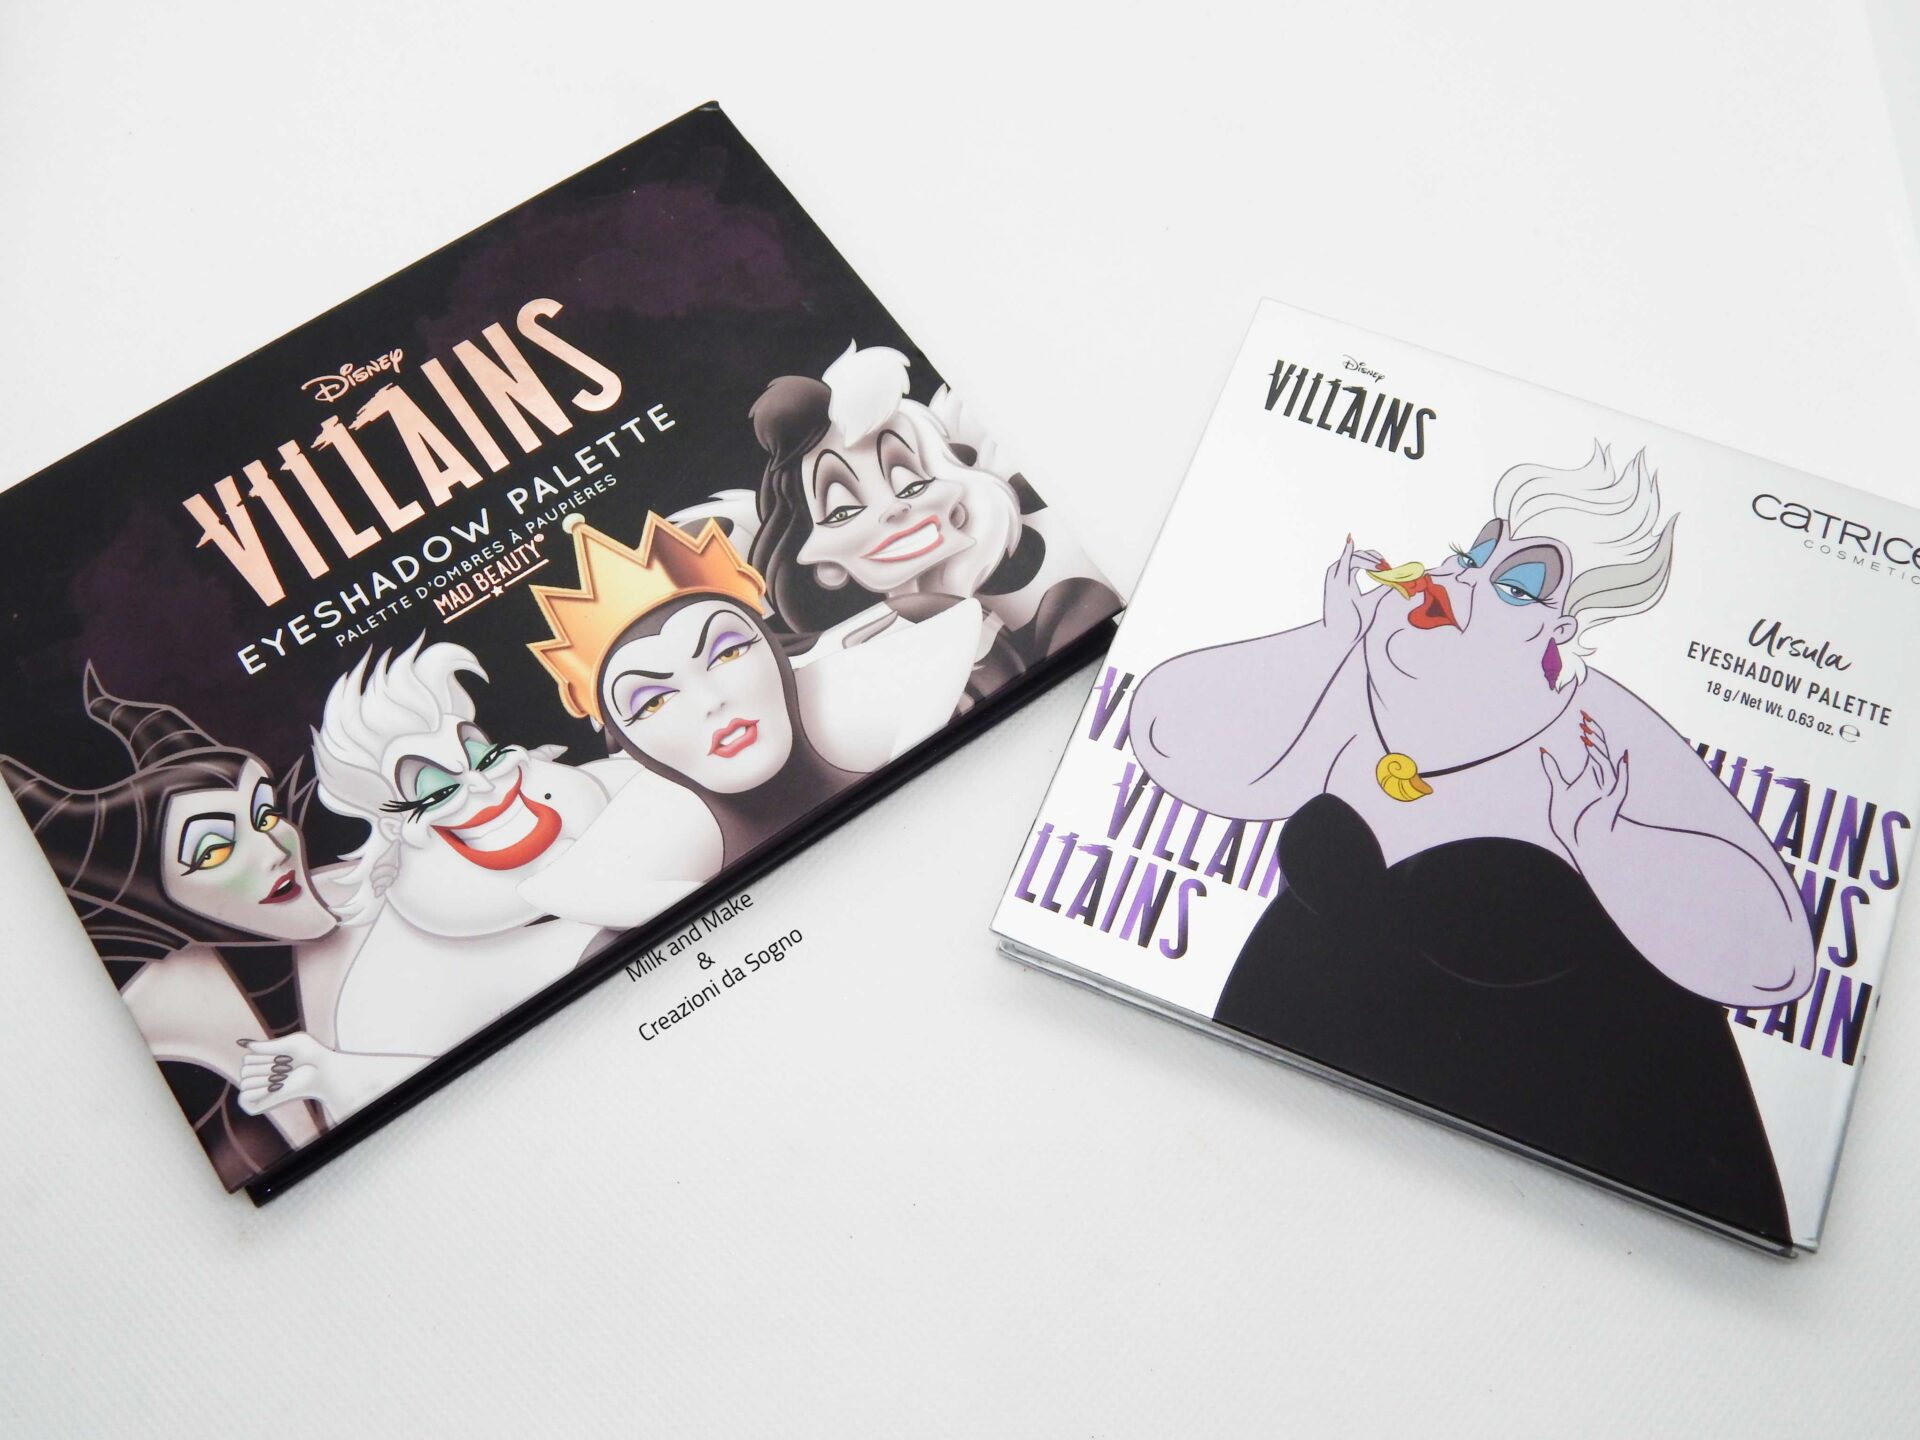 Eyeshadow Palette Villains x Catrice - Ursula Review